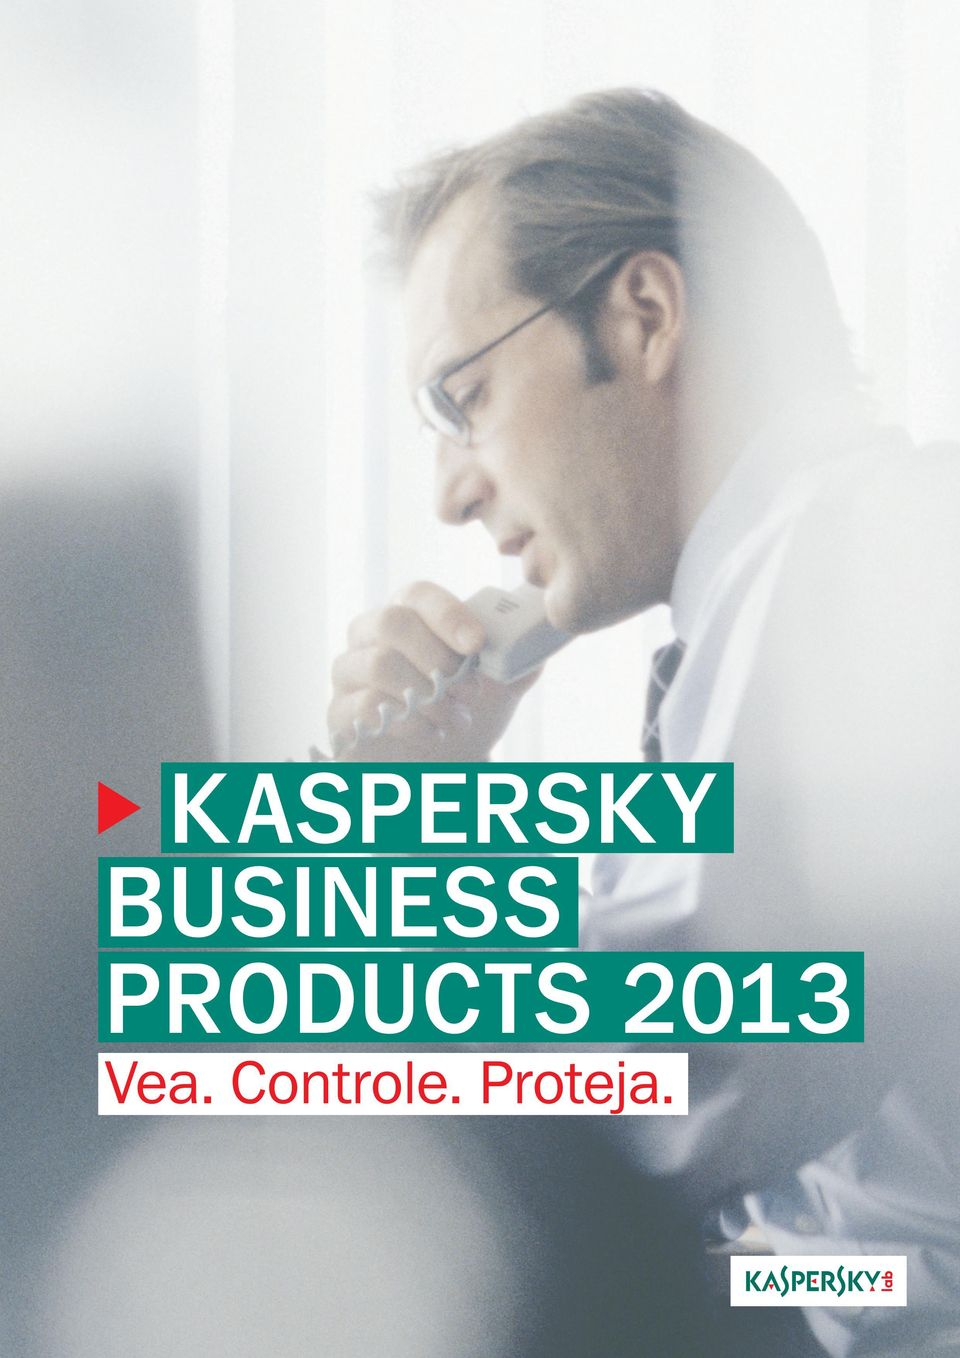 PRODUCTS 2013